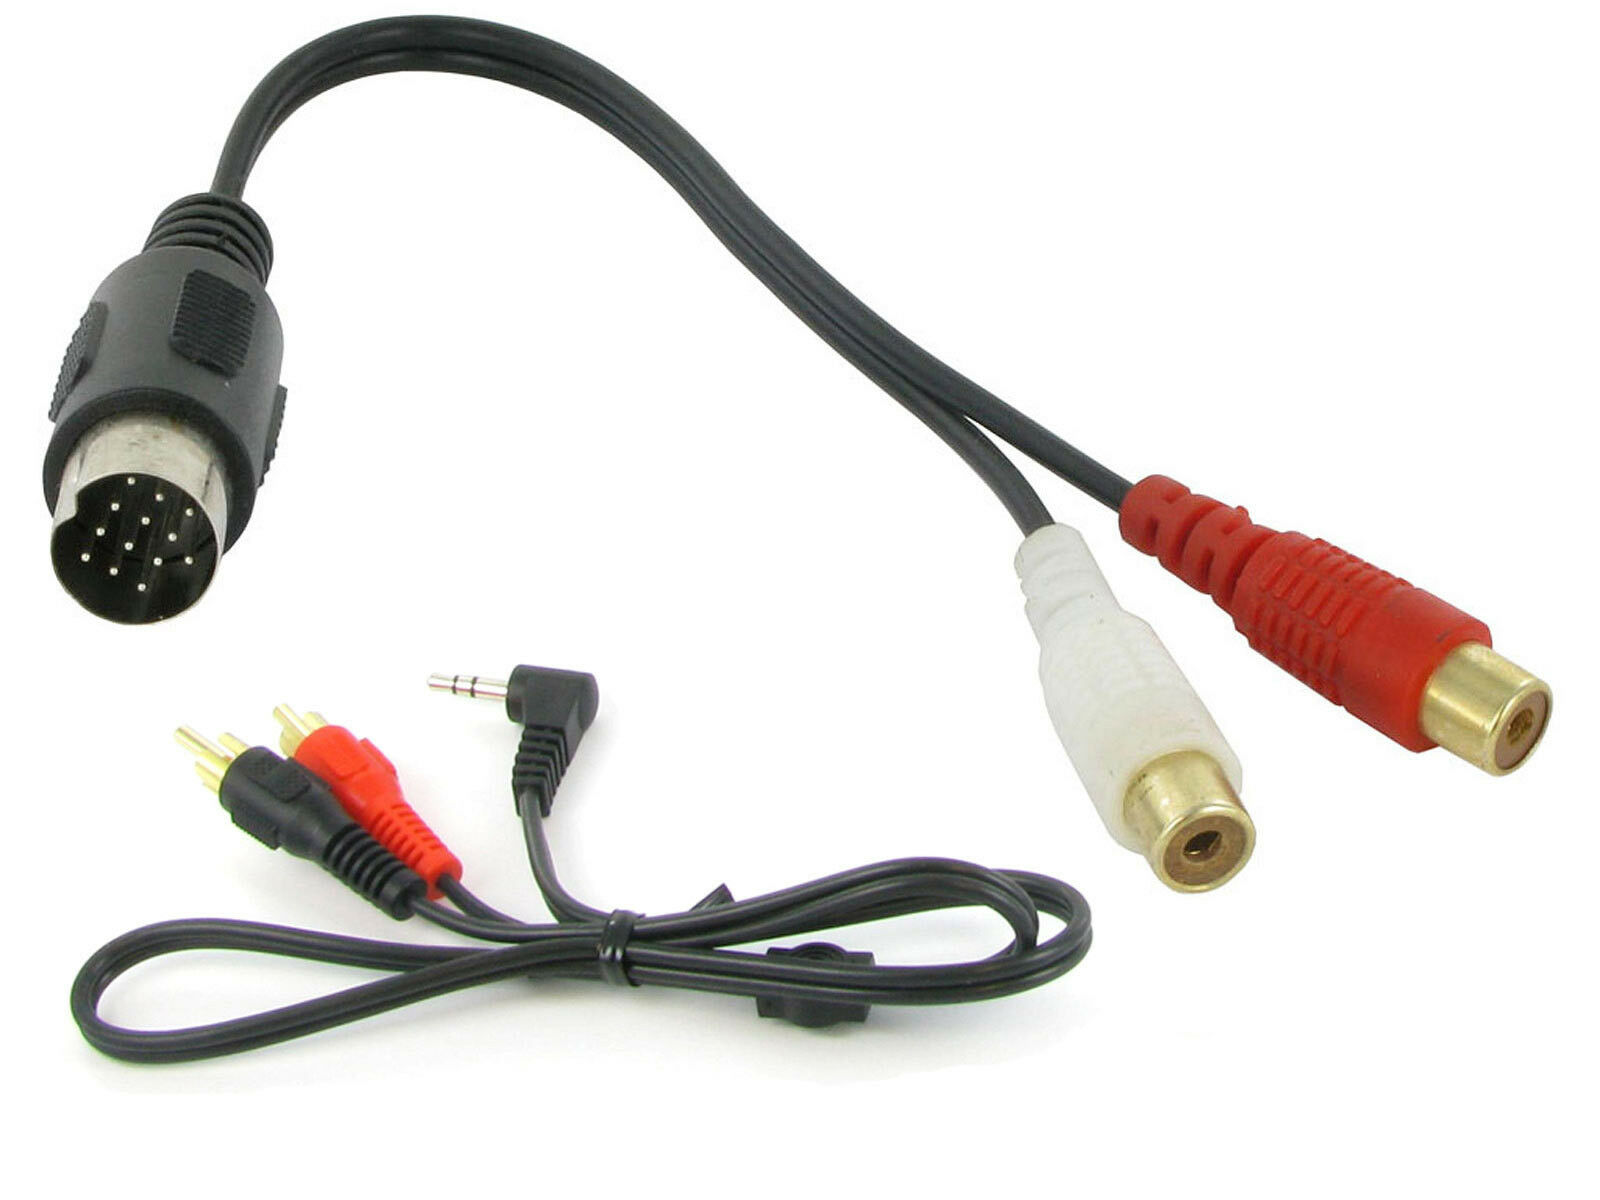 Kenwood CA-C1AX AUX input 3.5mm jack lead car radio iPhone MP3 adapter CT29KW01